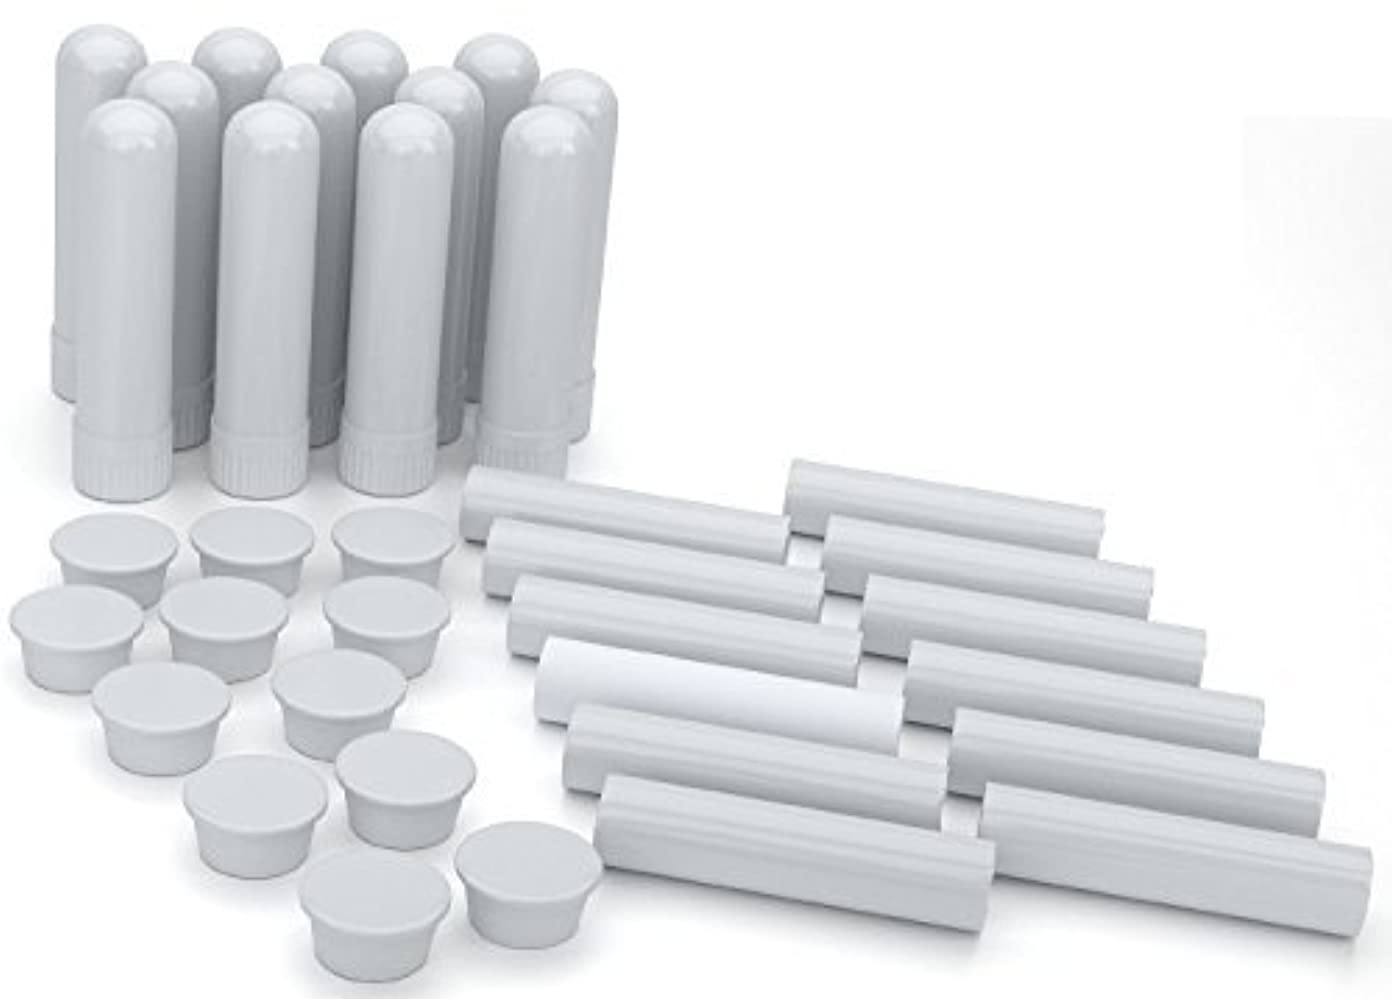 Essential Oil Aromatherapy Blank Nasal Inhaler Tubes (12 Complete Sticks), Empty White Vapor Inhalers w/Wicks...